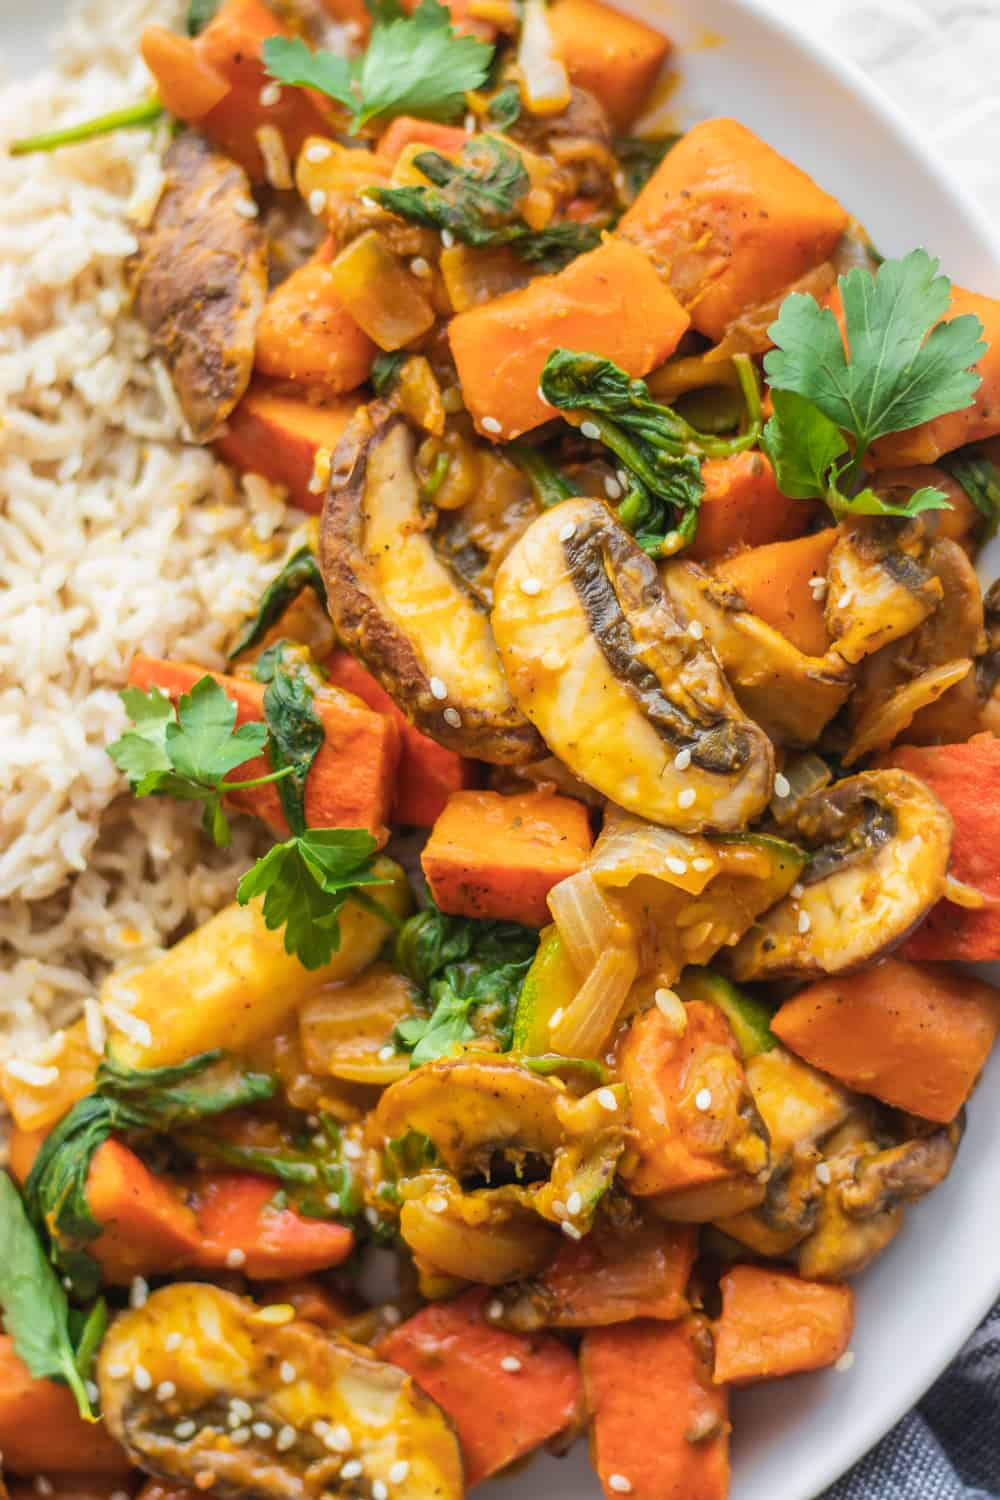 Gluten-free vegan pumpkin stir-fry with seasonal vegetables